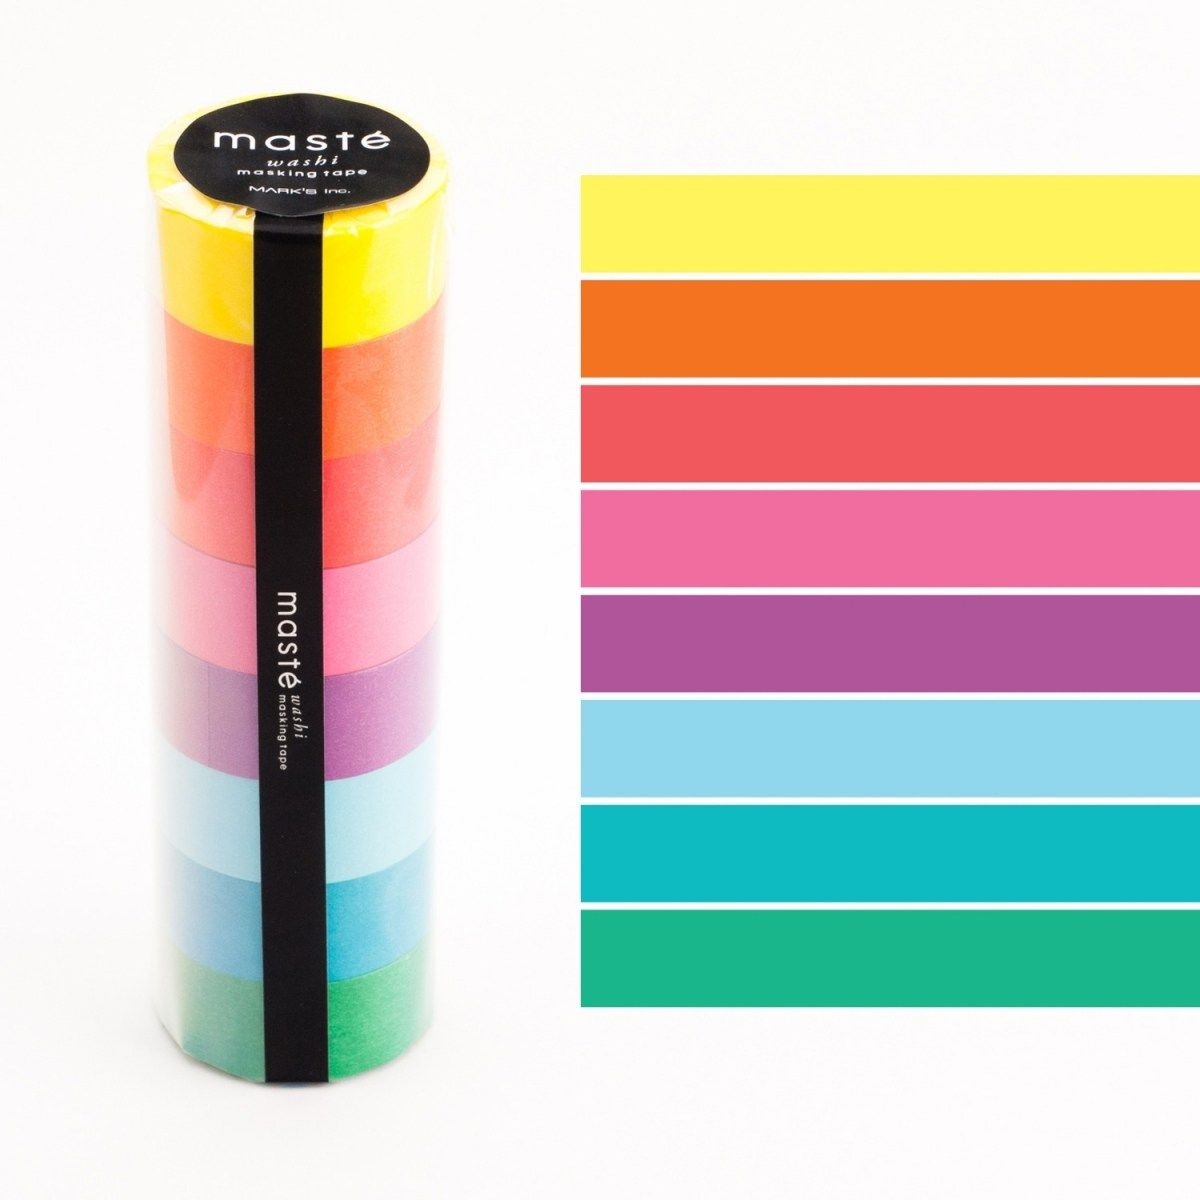 WASHI TAPE MASTÉ COLOR MIX (KIT C/ 8)